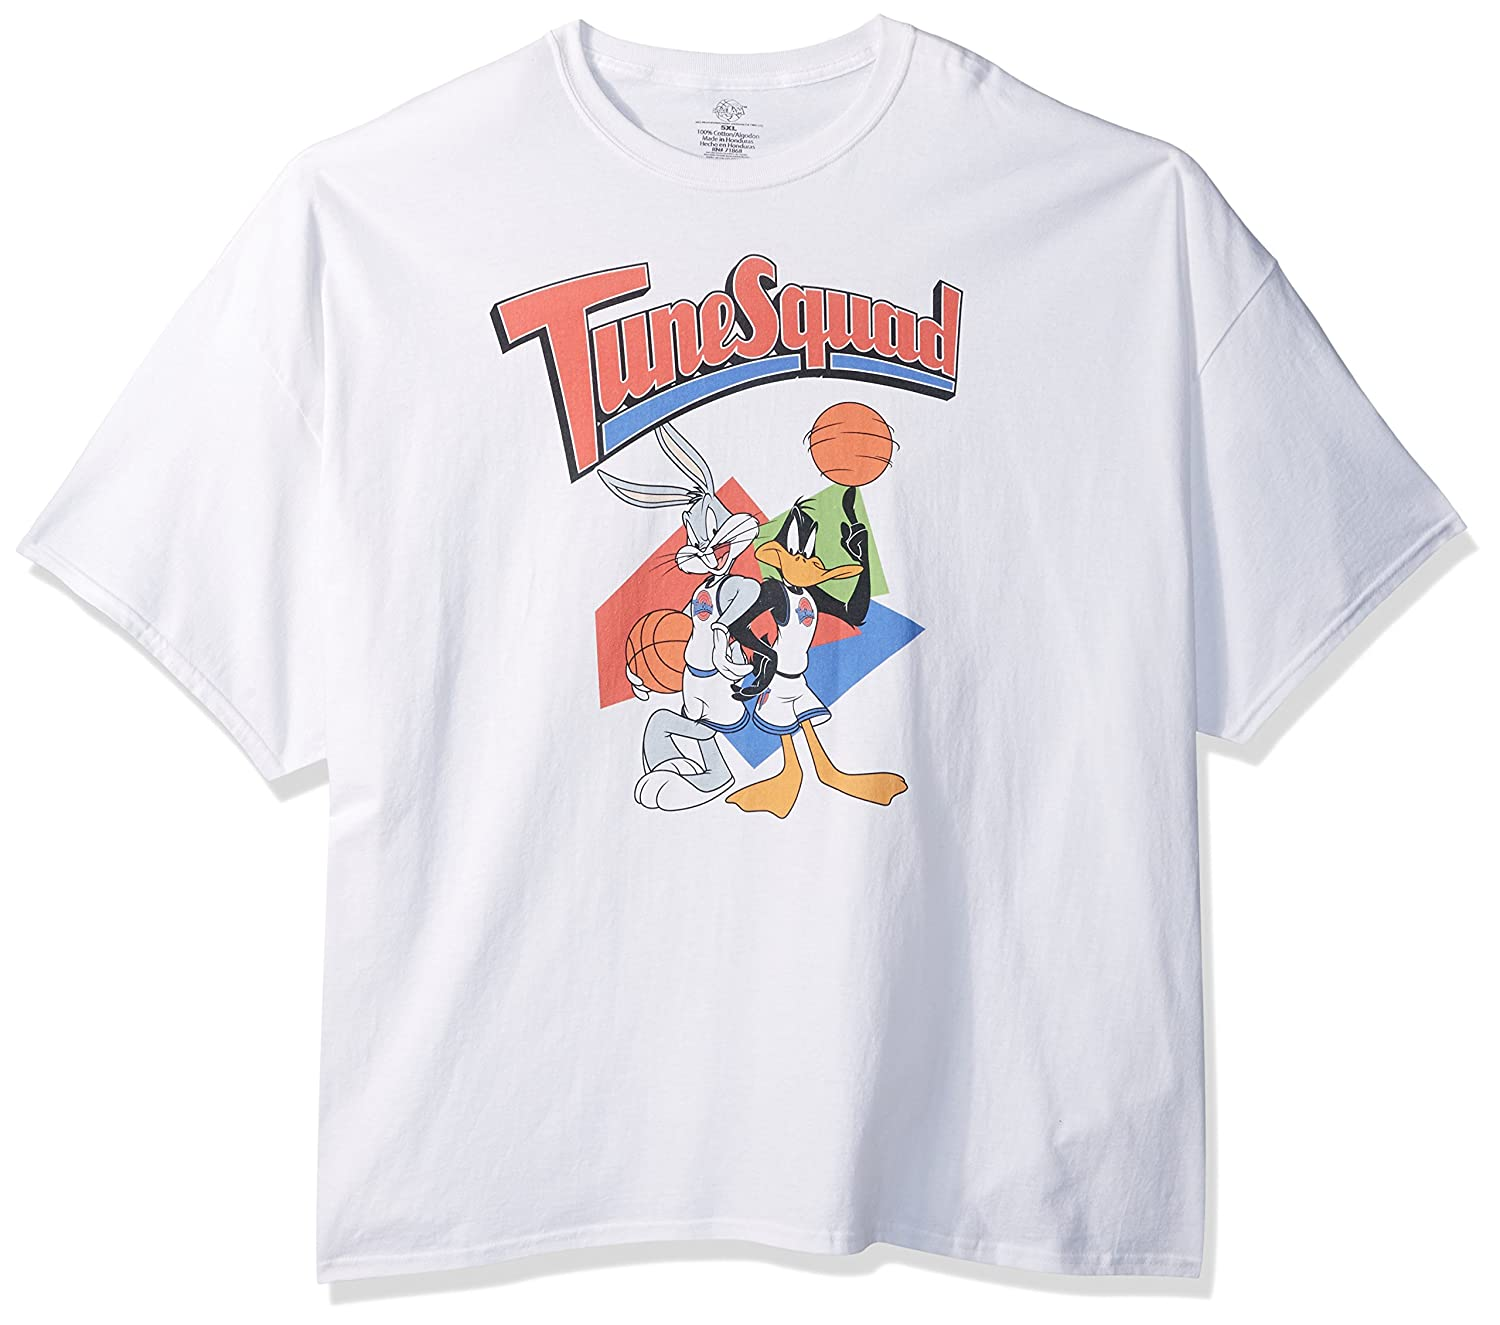 5ed105f93c21 Amazon.com: Warner Brothers Retro Tune Squad Space Jam T-Shirt Big and  Tall: Clothing